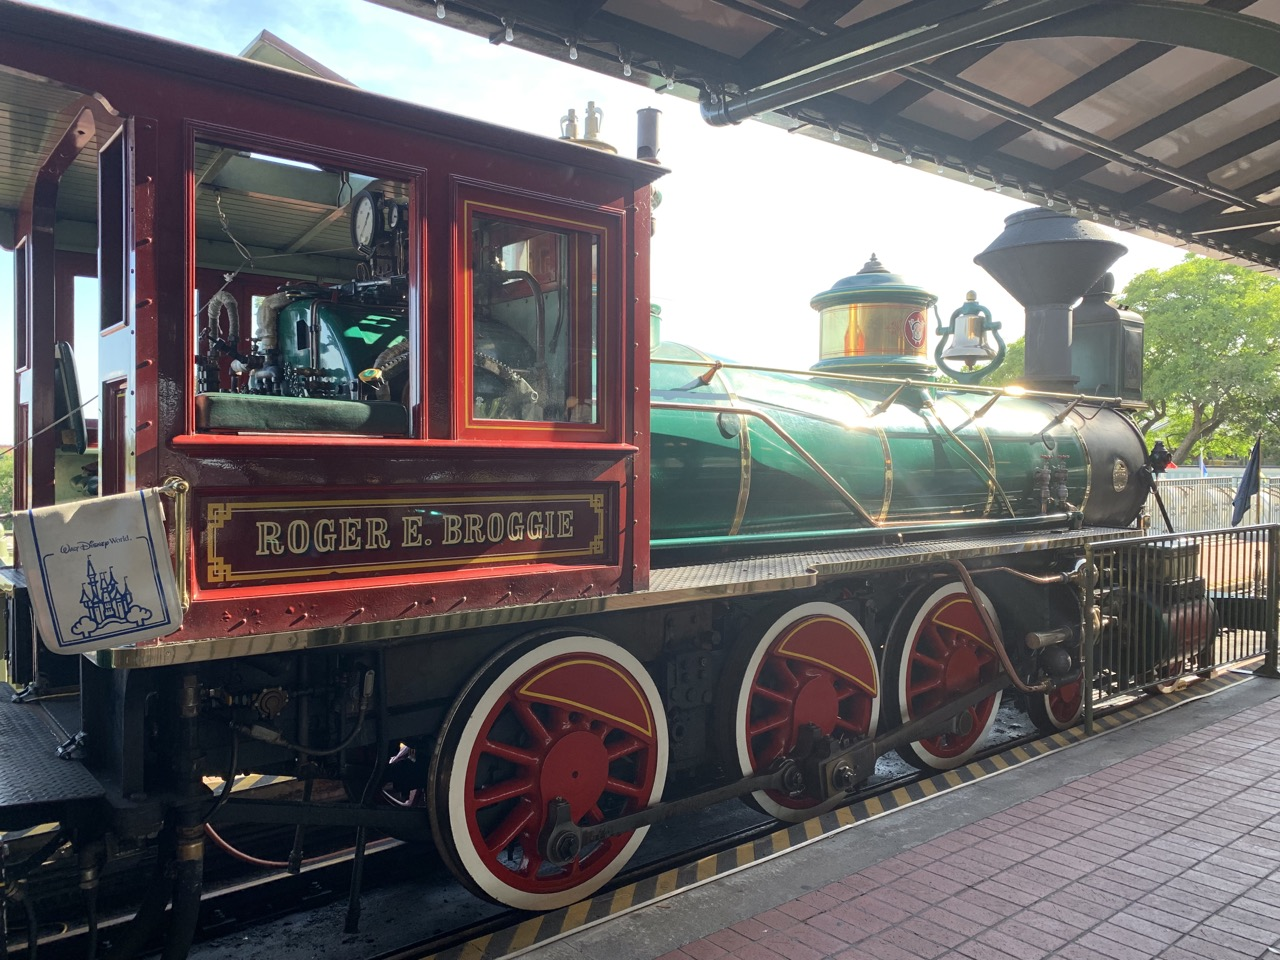 disney world trip report early summer 2019 day five 57 walt loved trains.jpeg